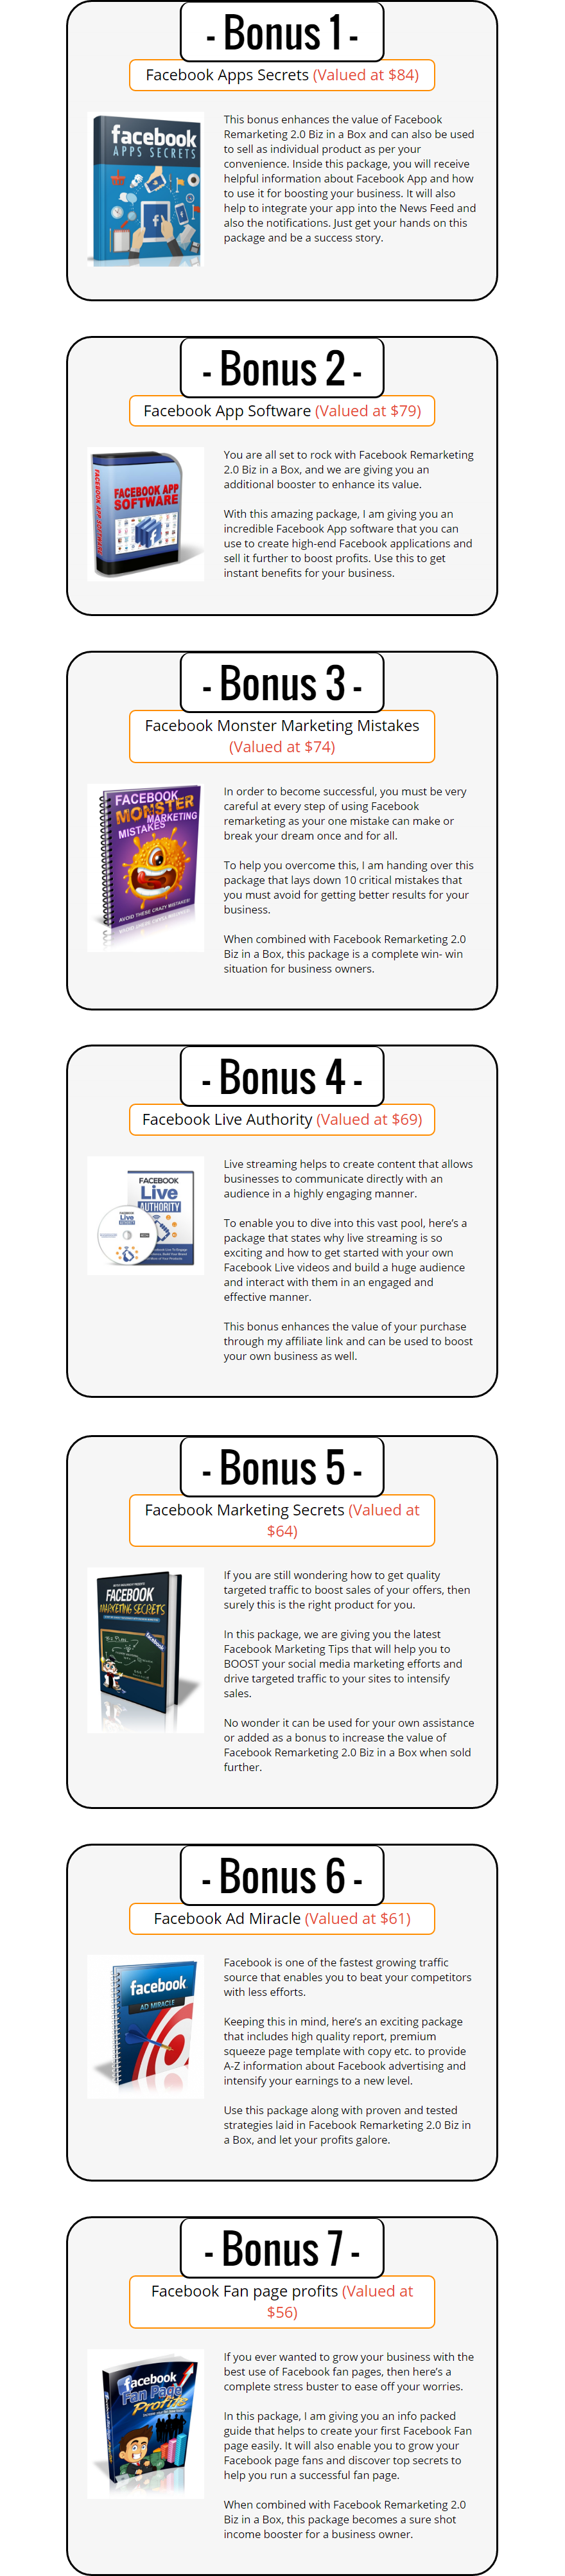 FB Re-marketing V2 Biz in a Box Bonuses